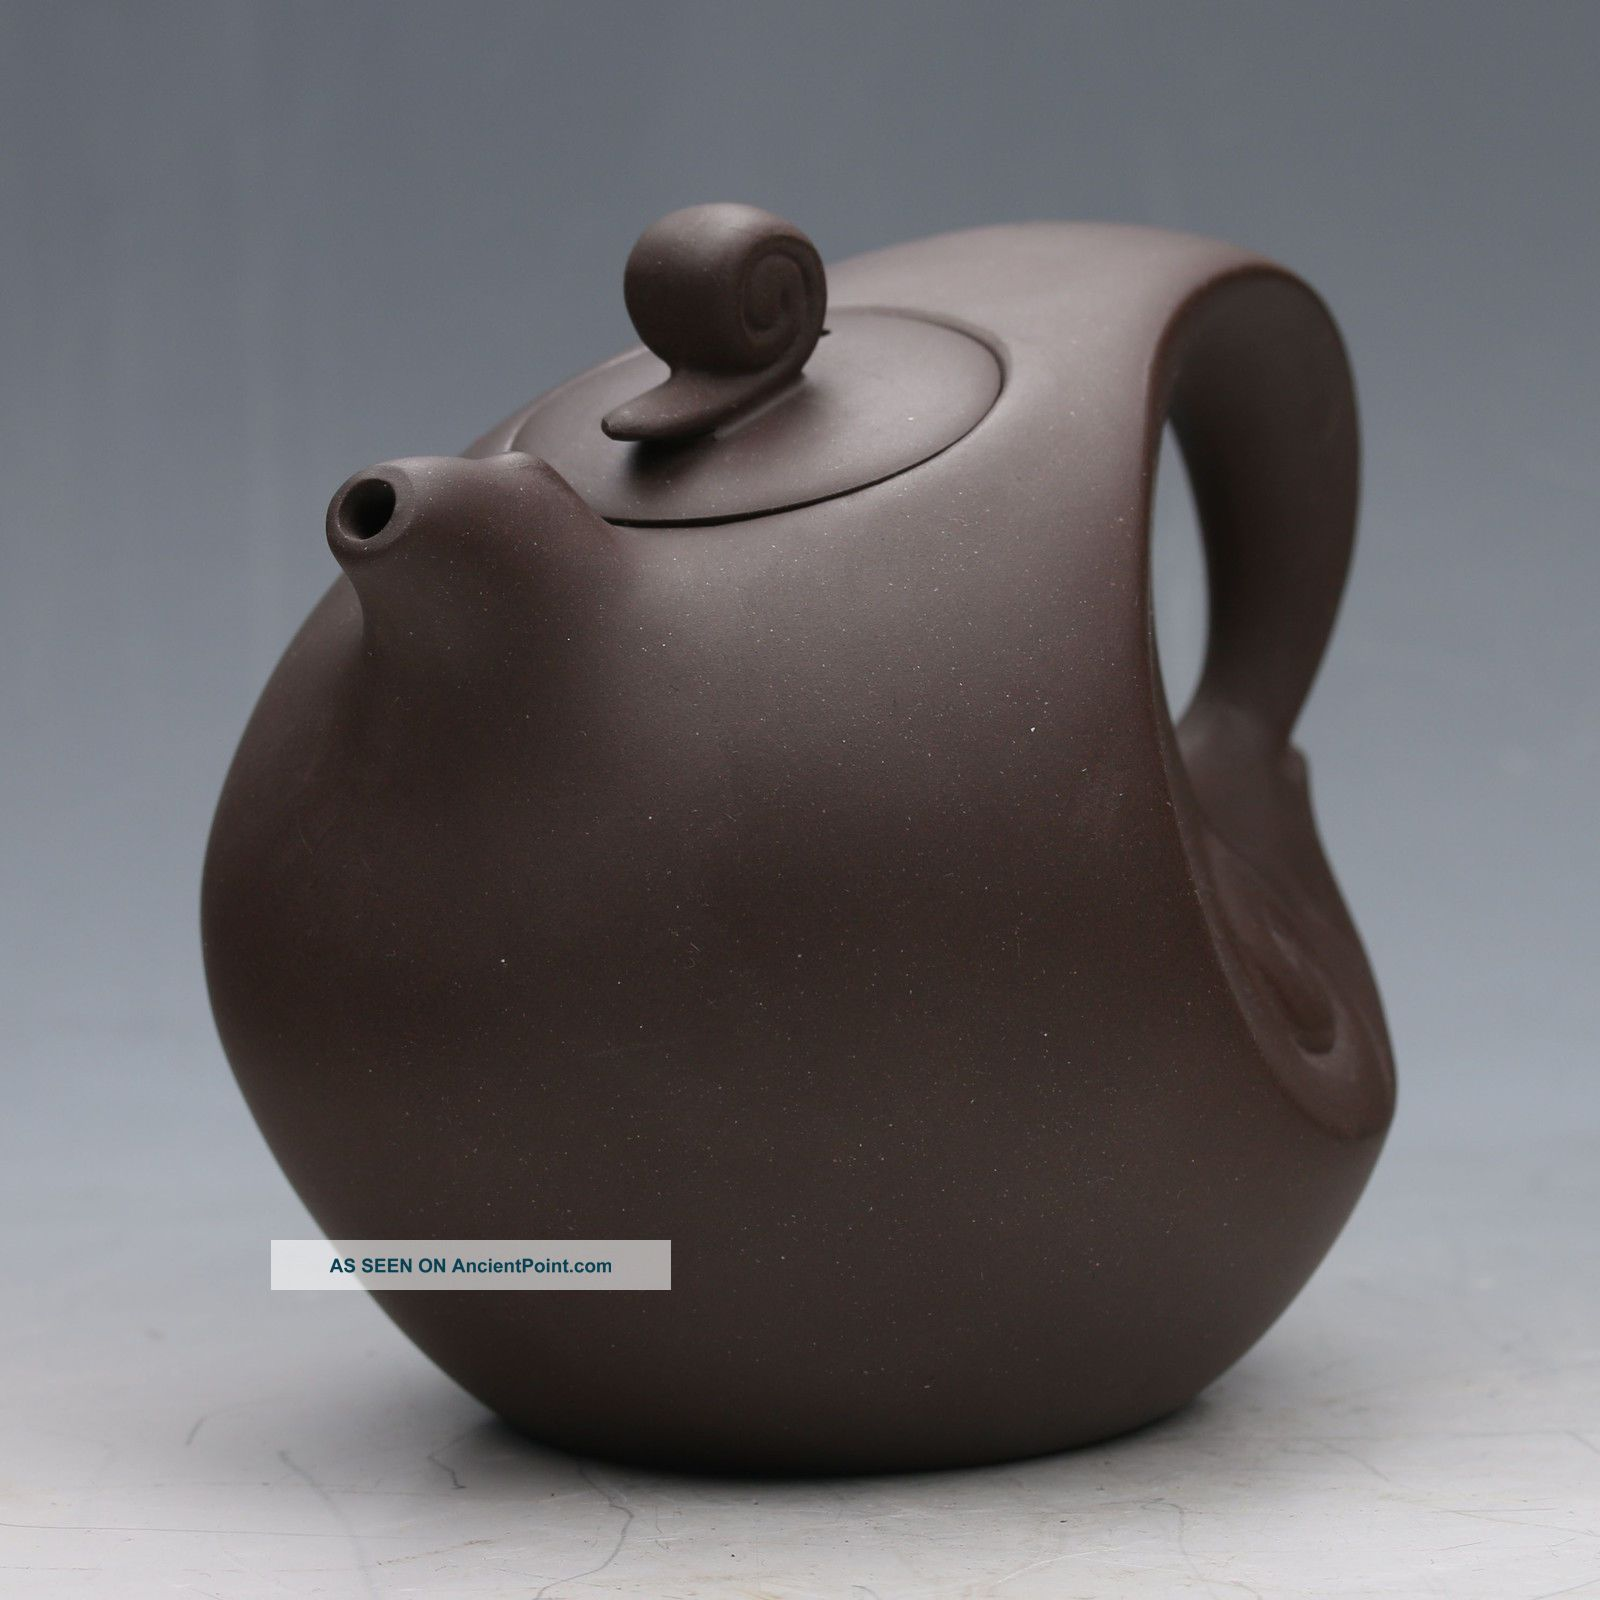 Yixing China  City pictures : Chinese Yixing Sand Fired zisha Handwork Teapot G028 Teapots photo ...